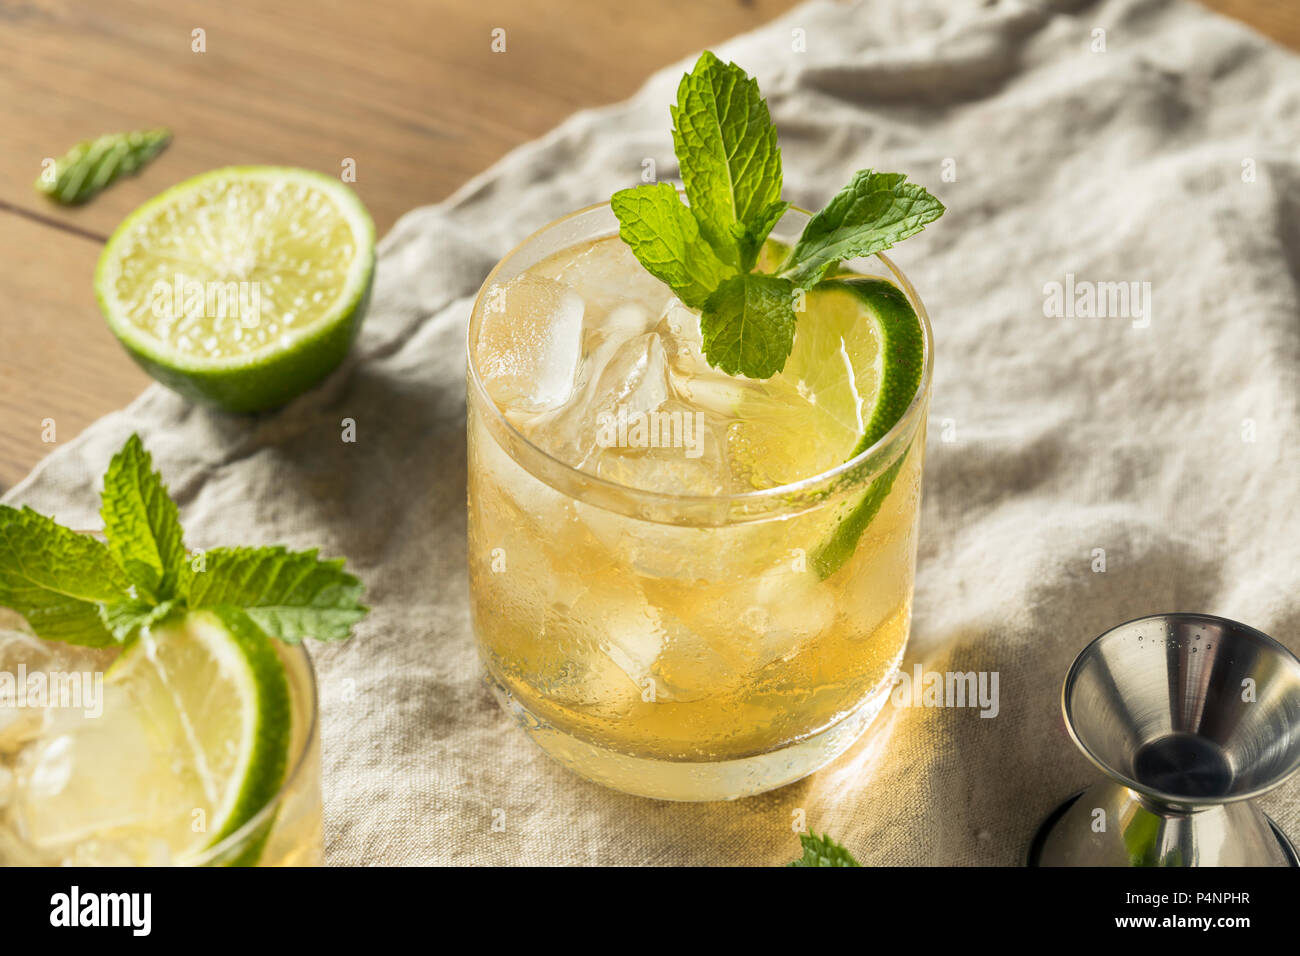 Homemade Moscow Mule with Ginger and Lime in a Regular Glass - Stock Image